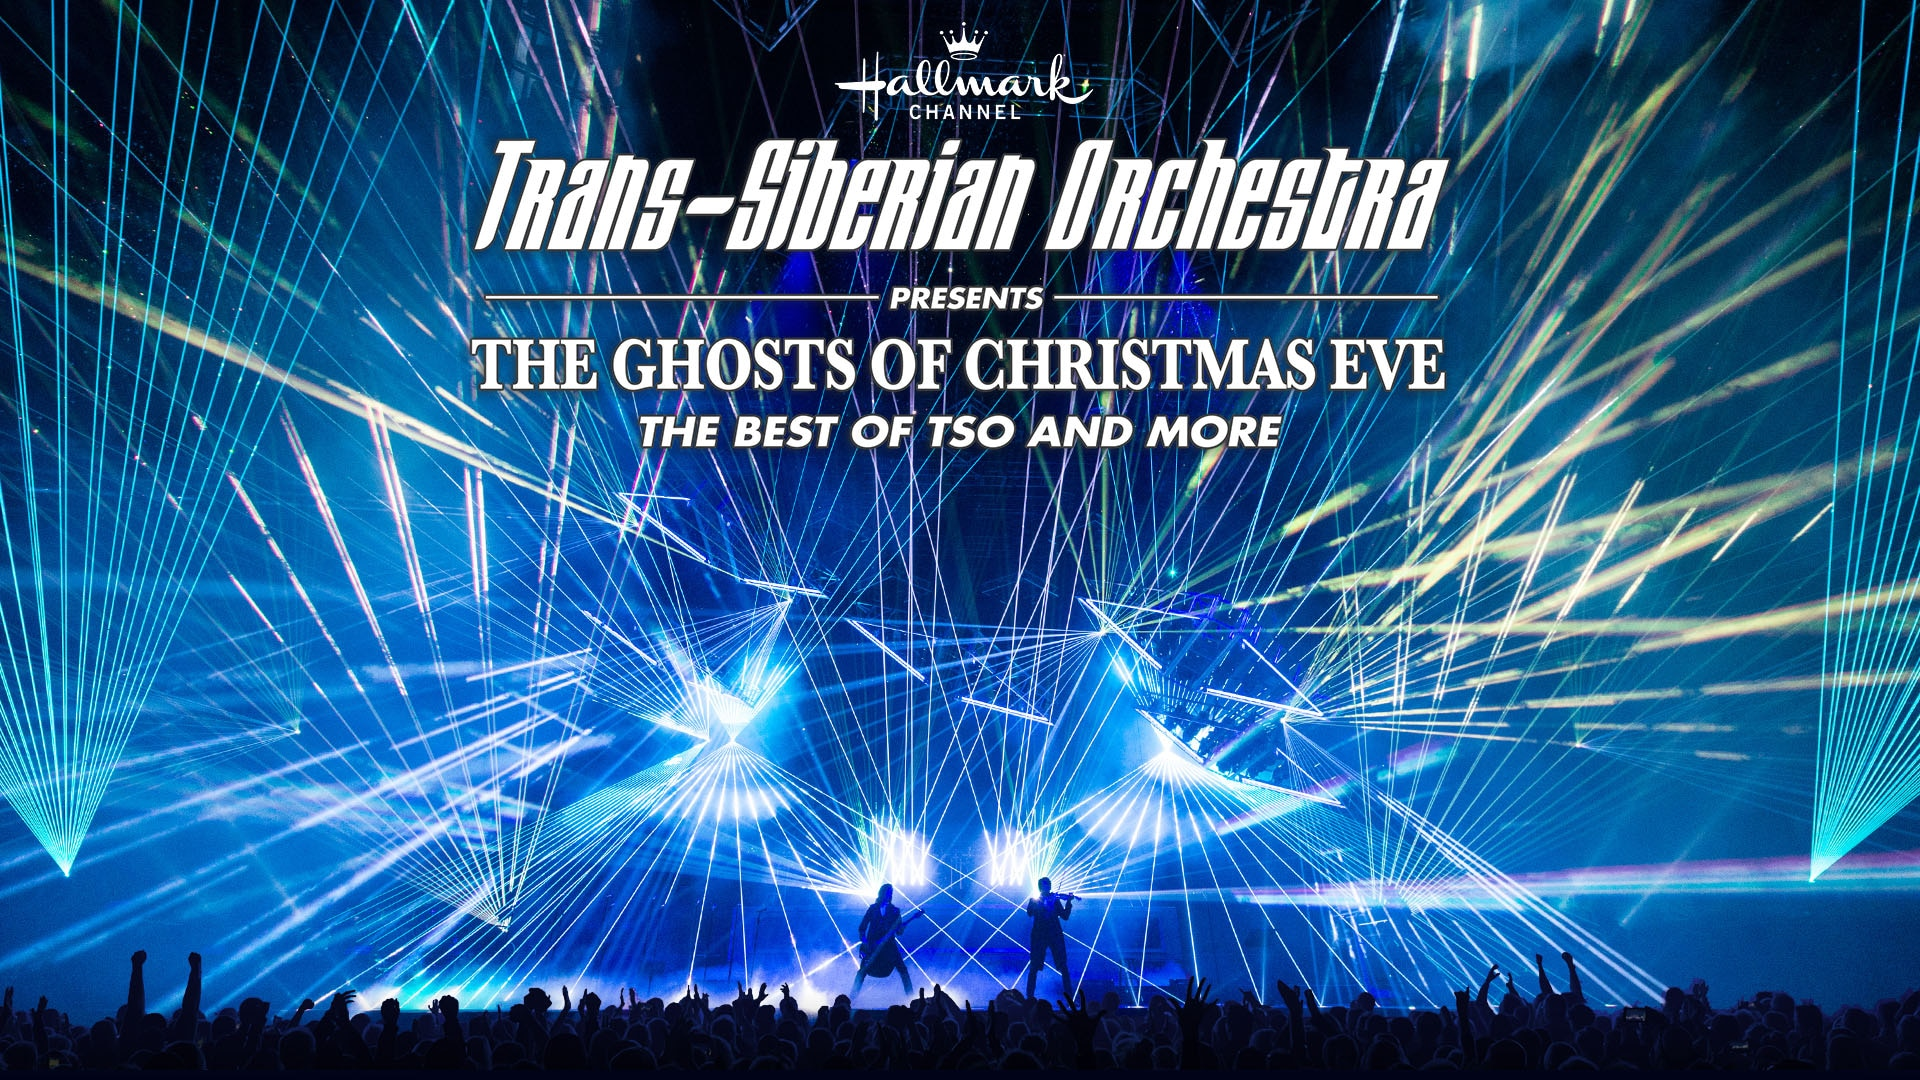 Trans-Siberian Orchestra Presents The Ghosts of Christmas Eve - Afternoon